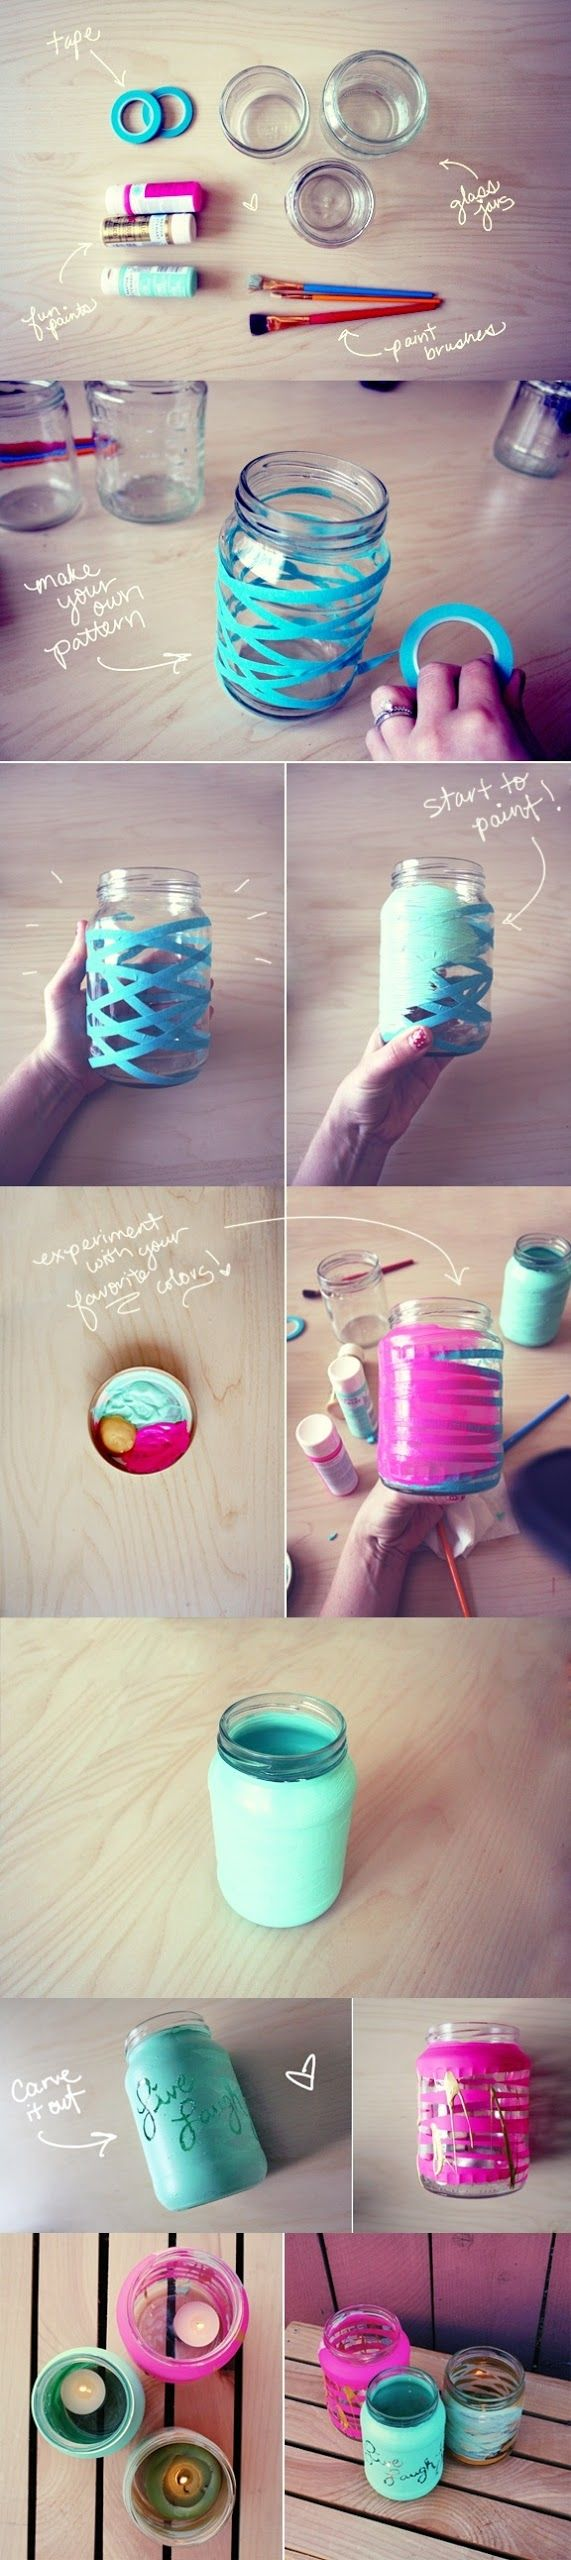 Diy mason jar candles pictures photos and images for for Candle craft ideas